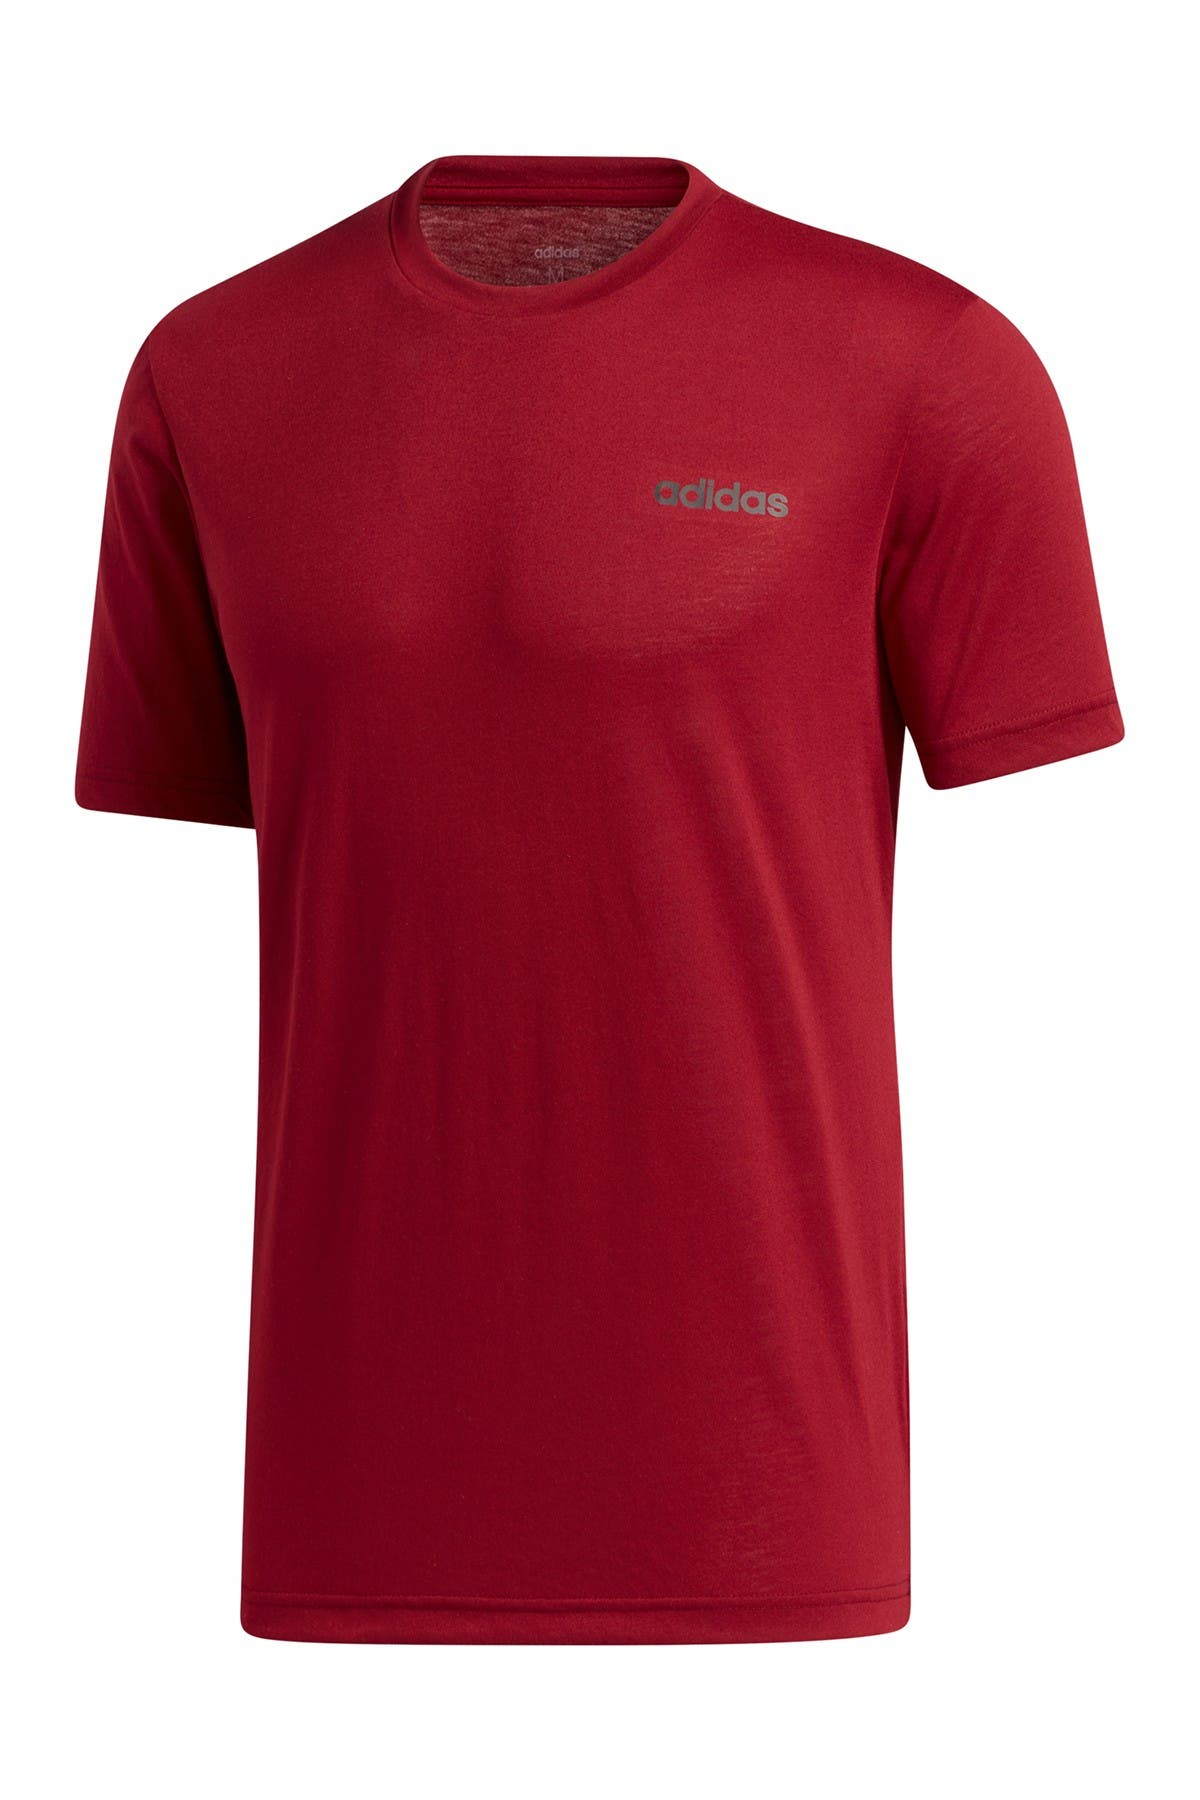 Image of adidas Ready To Move Feel Ready T-Shirt